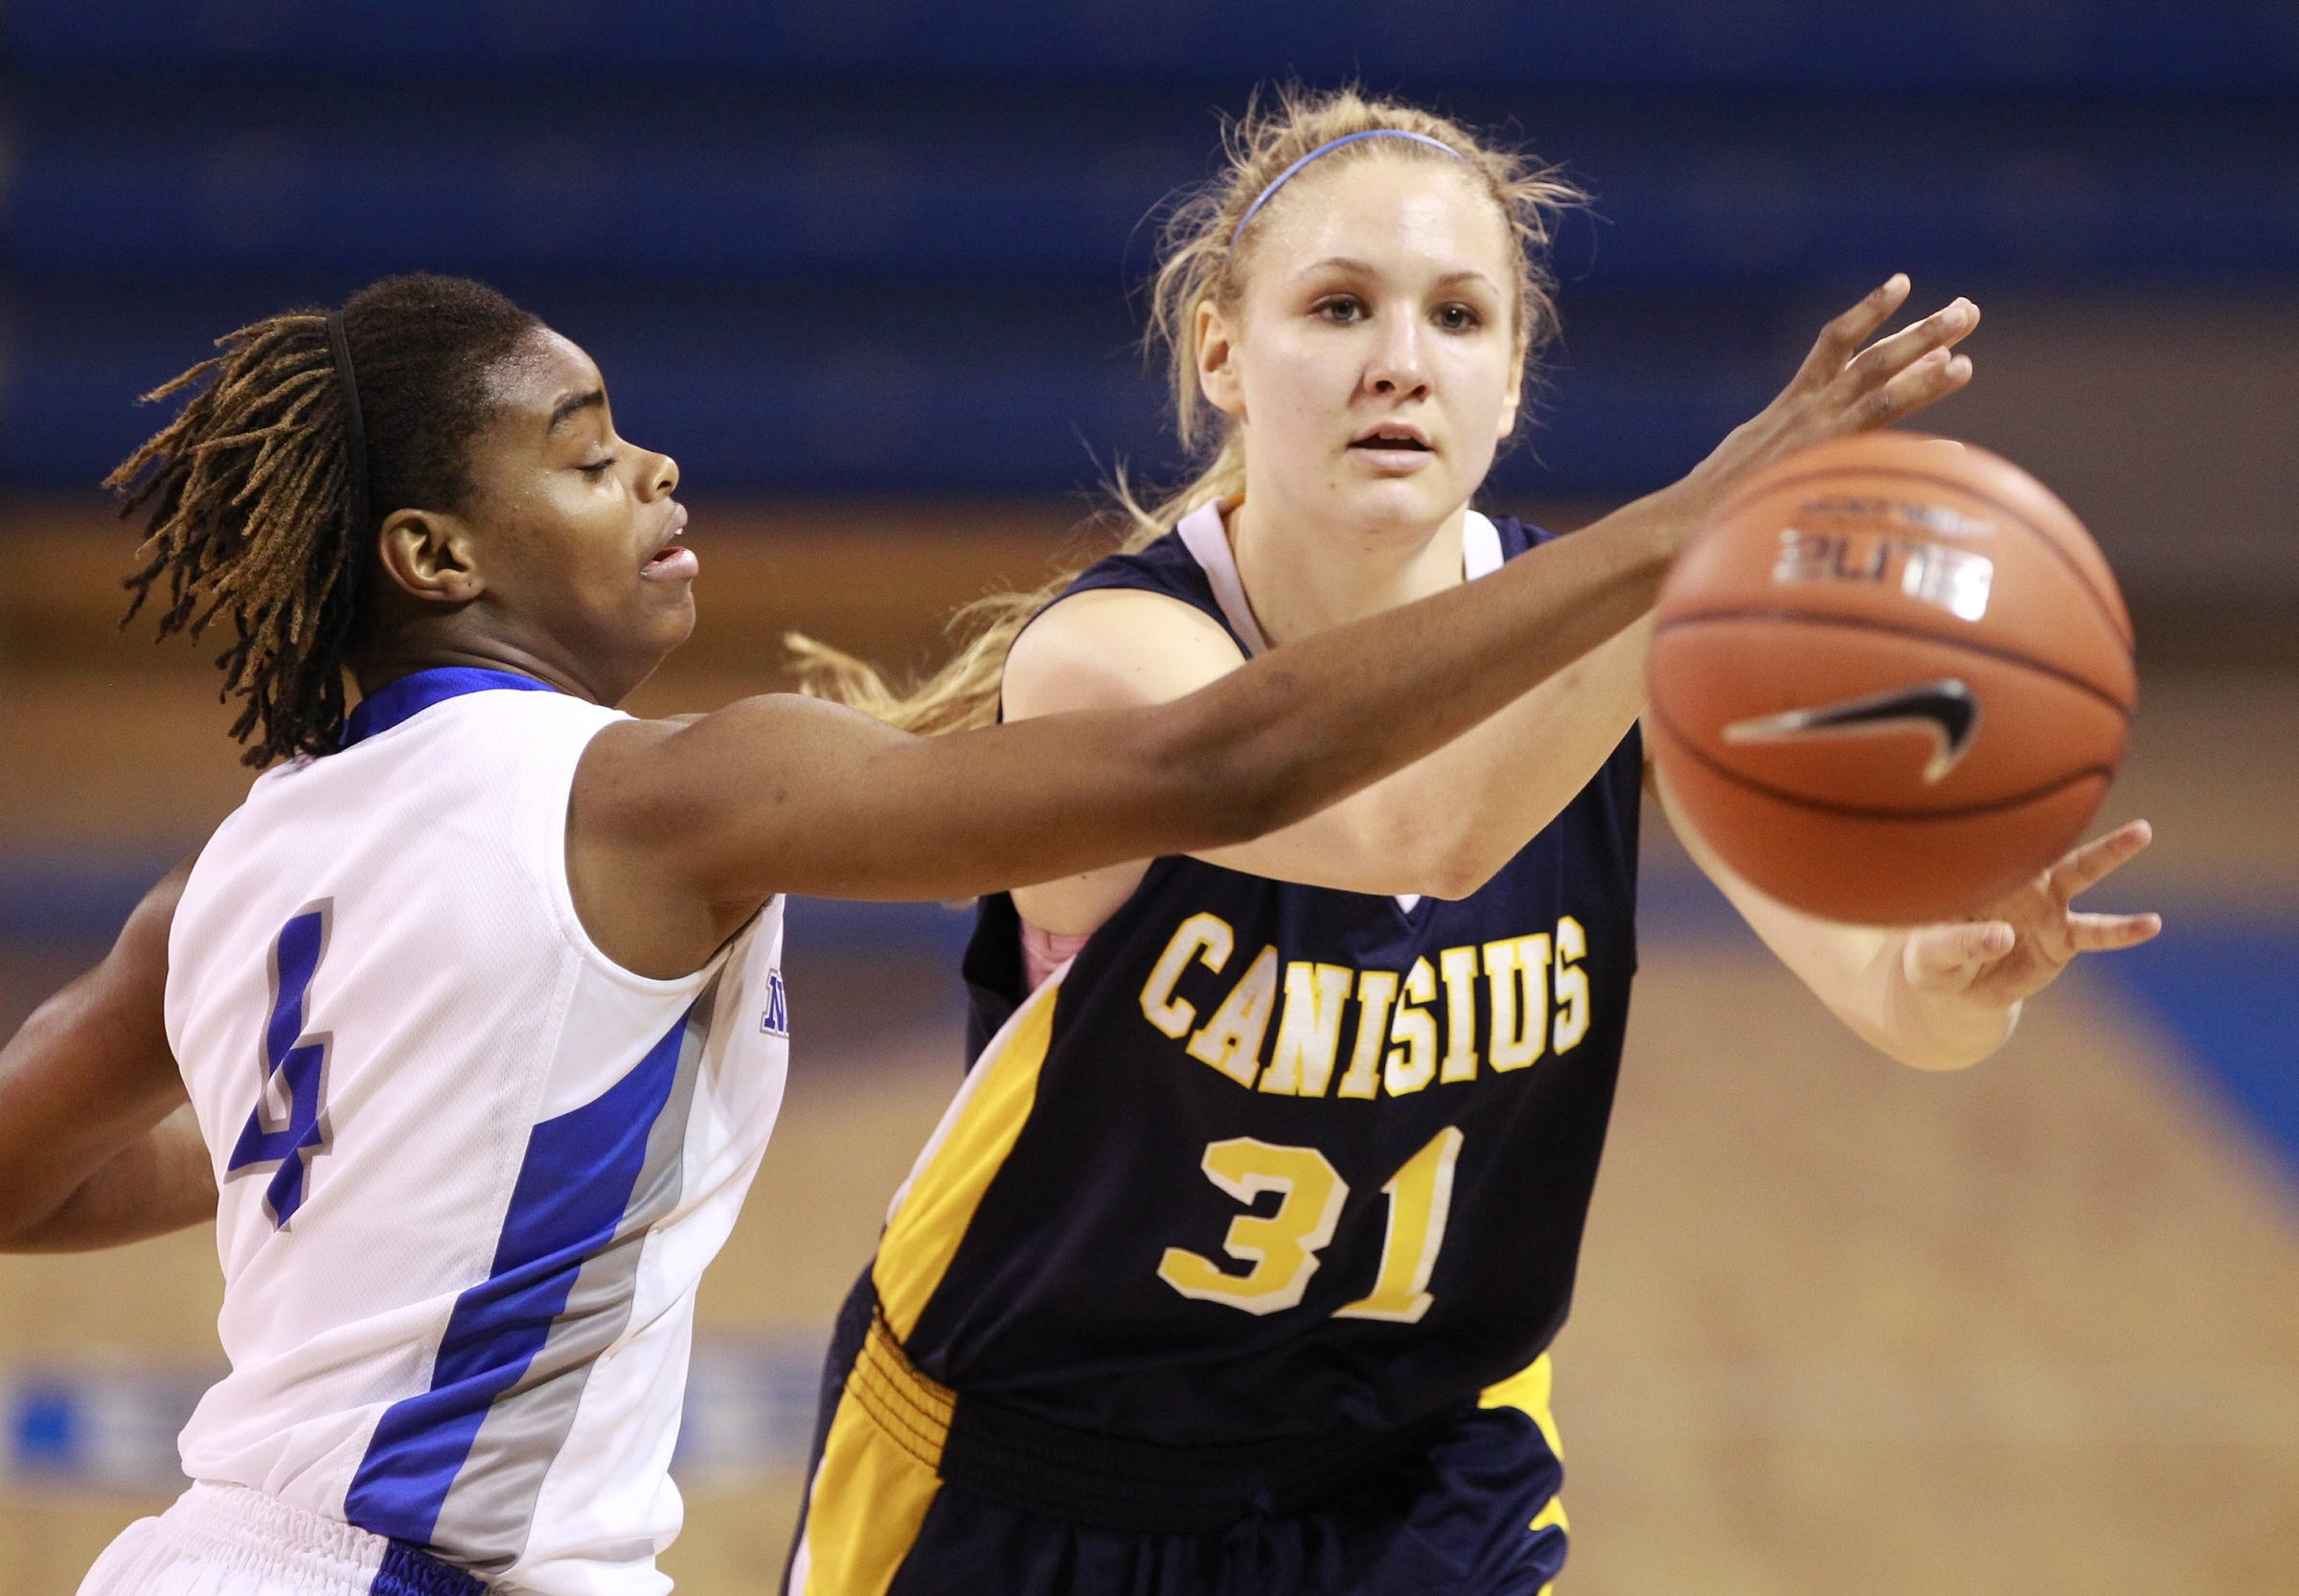 UB's Joanna Smith deflects a pass by Canisius' Emily Weber during the Bulls' 68-59 victory Wednesday night.